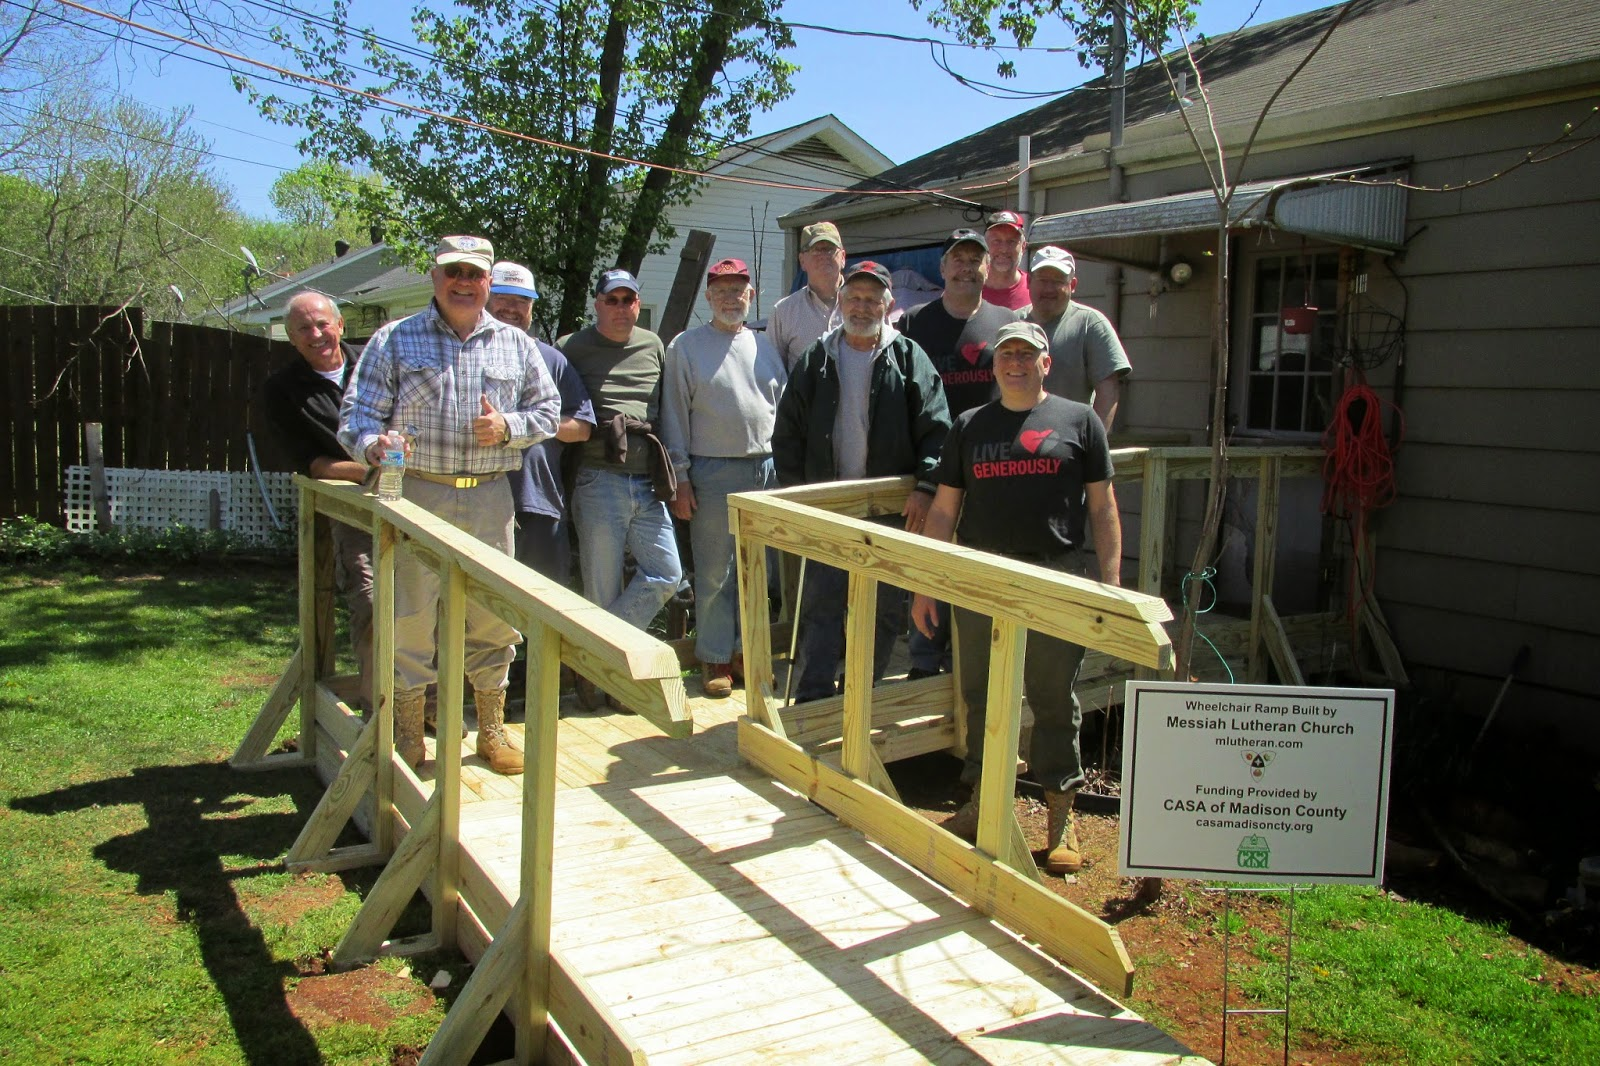 Wheelchair Ramp, 4 Apr 2015